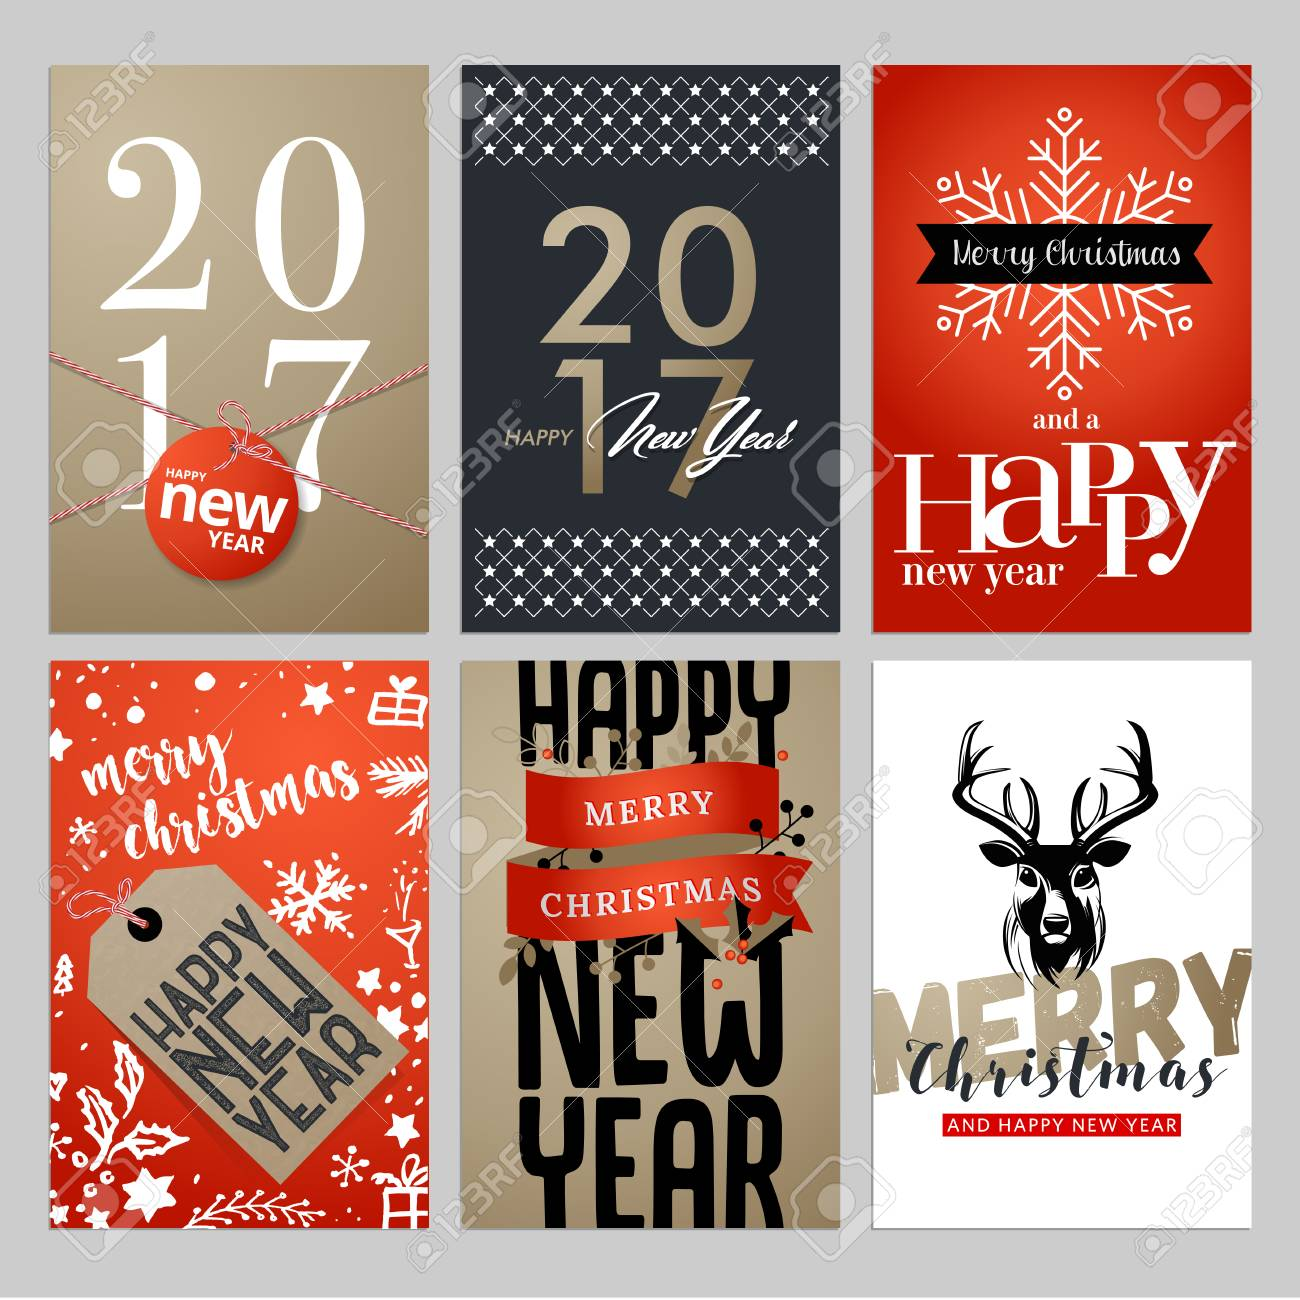 Christmas and new year flat design greeting cards set hand drawn christmas and new year flat design greeting cards set hand drawn vector illustrations for greeting m4hsunfo